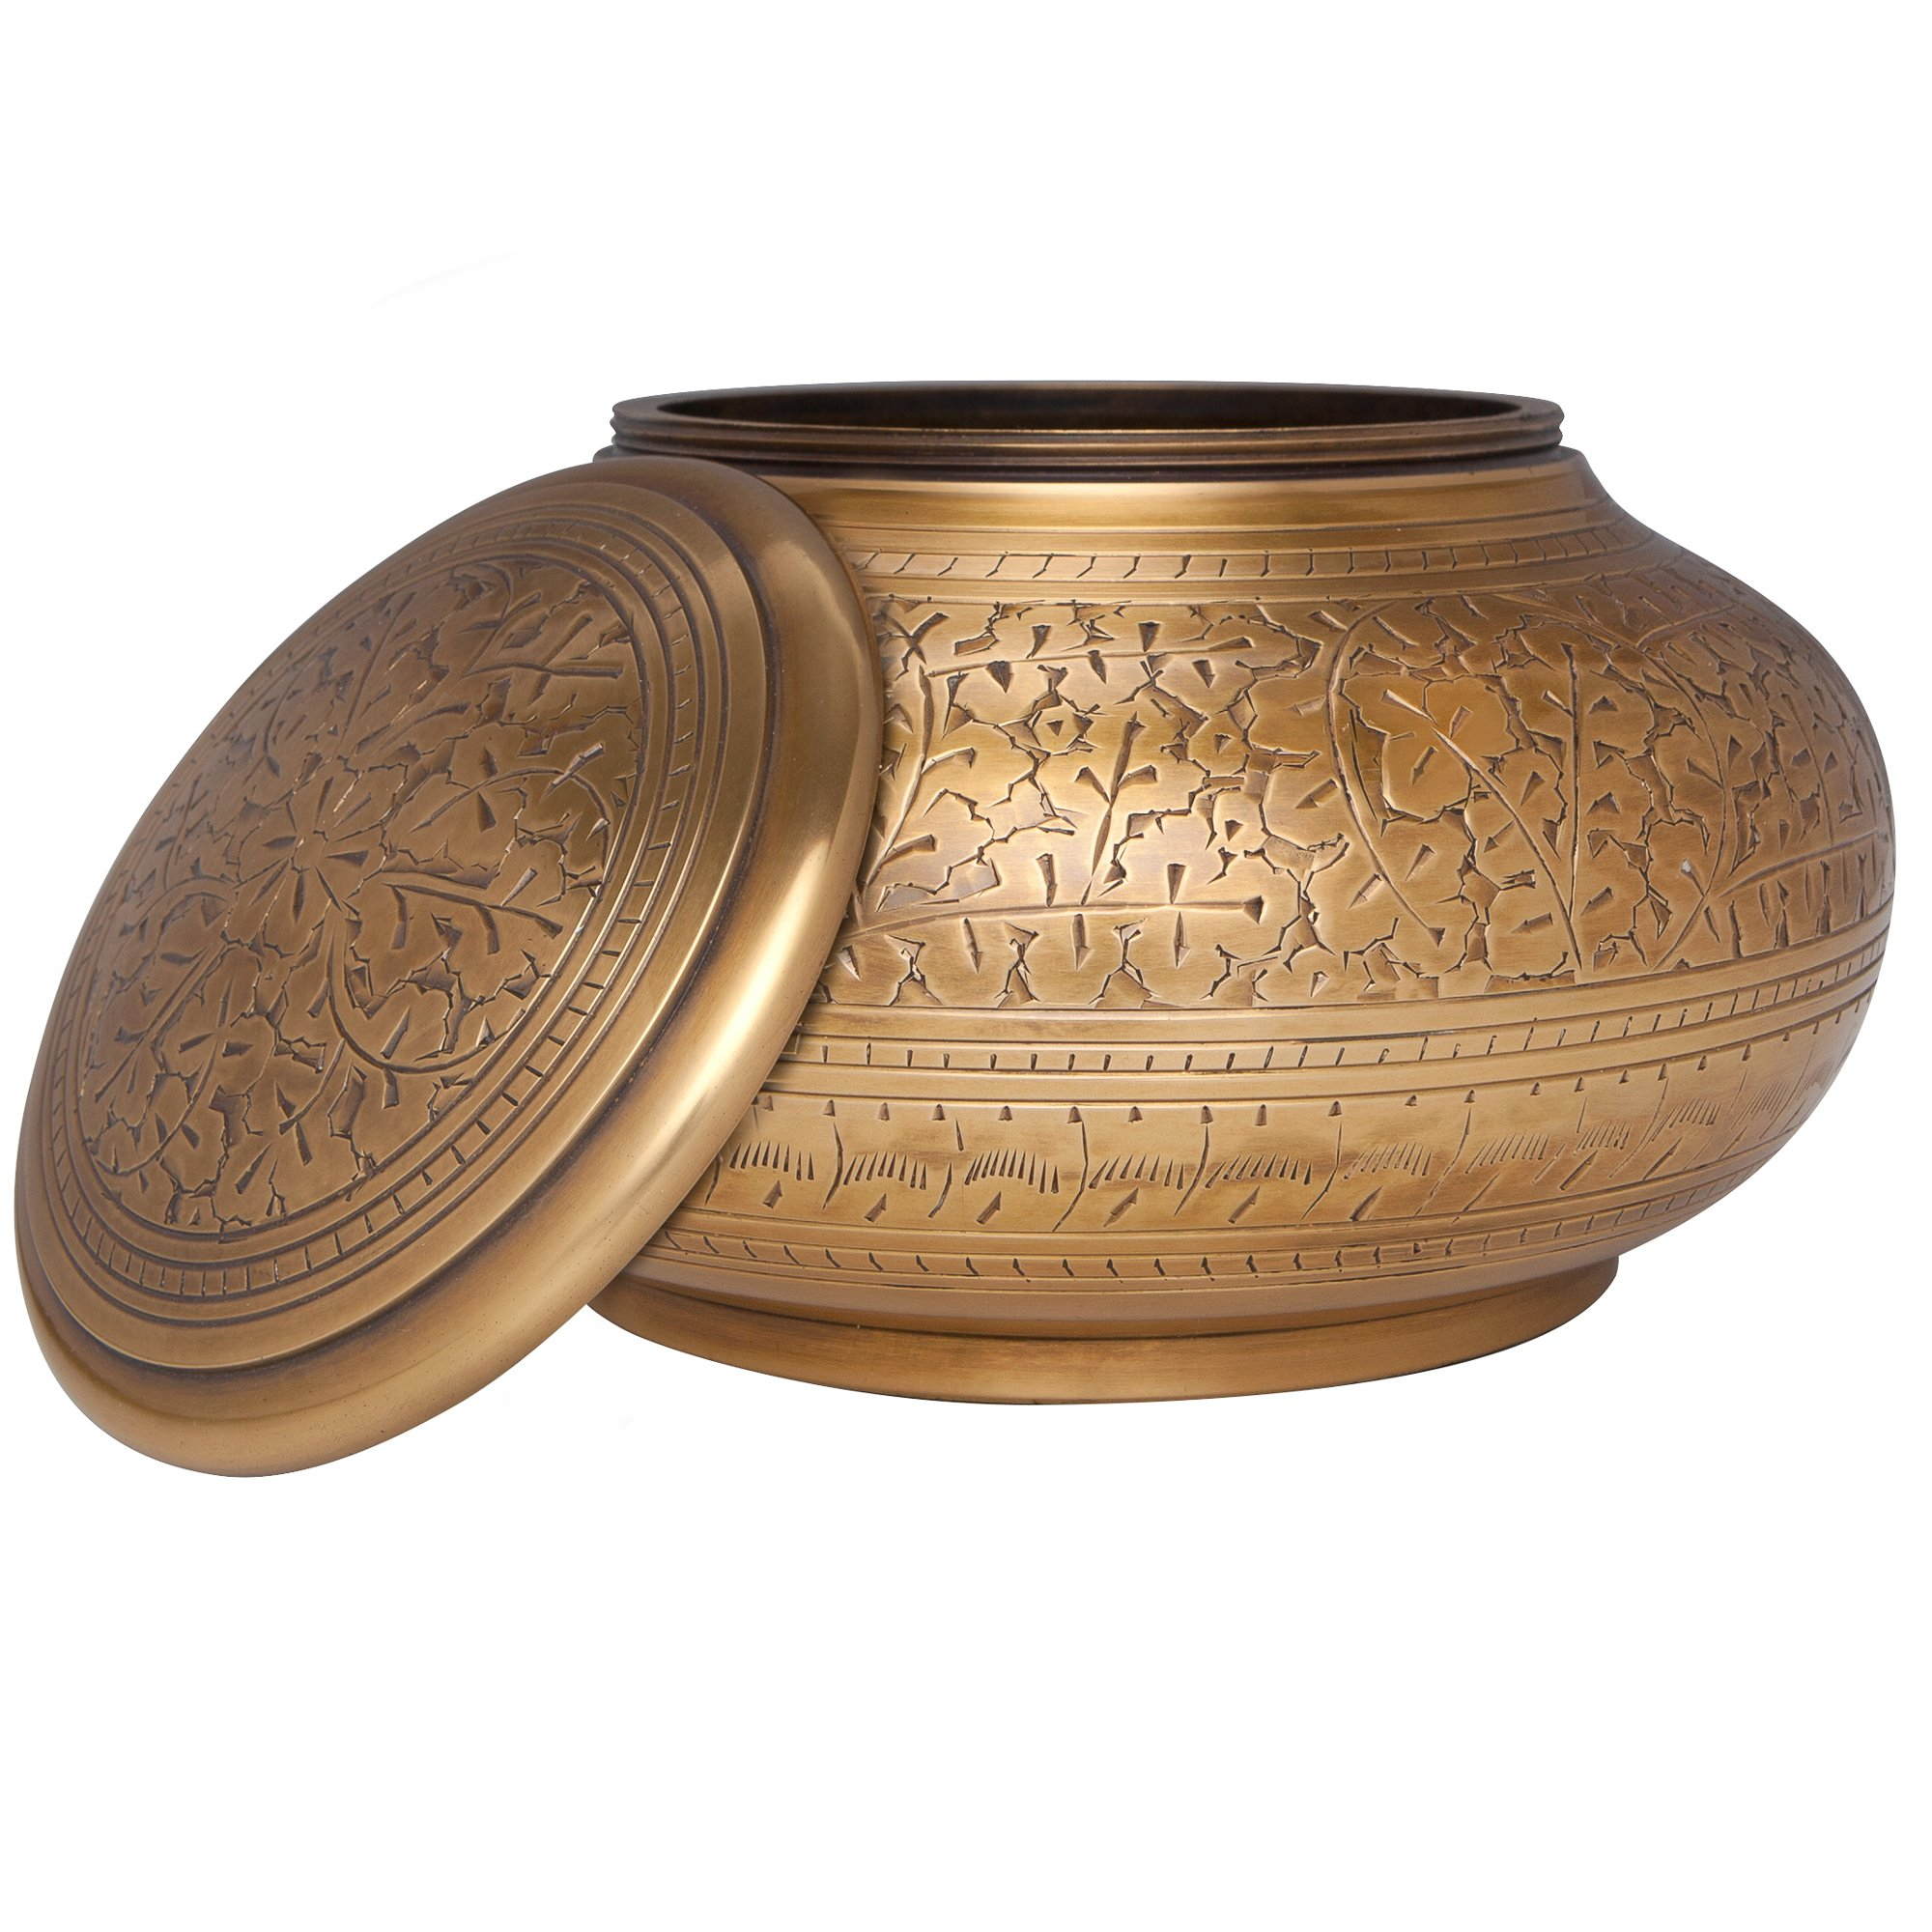 Bronze Antique Brass Funeral Urn by Liliane Memorials - Cremation Urn for Human Ashes - Hand Made in Brass - Suitable for Cemetery Burial or Niche - Large Size fits remains of Adults up to 110 lbs by Liliane Memorials (Image #2)